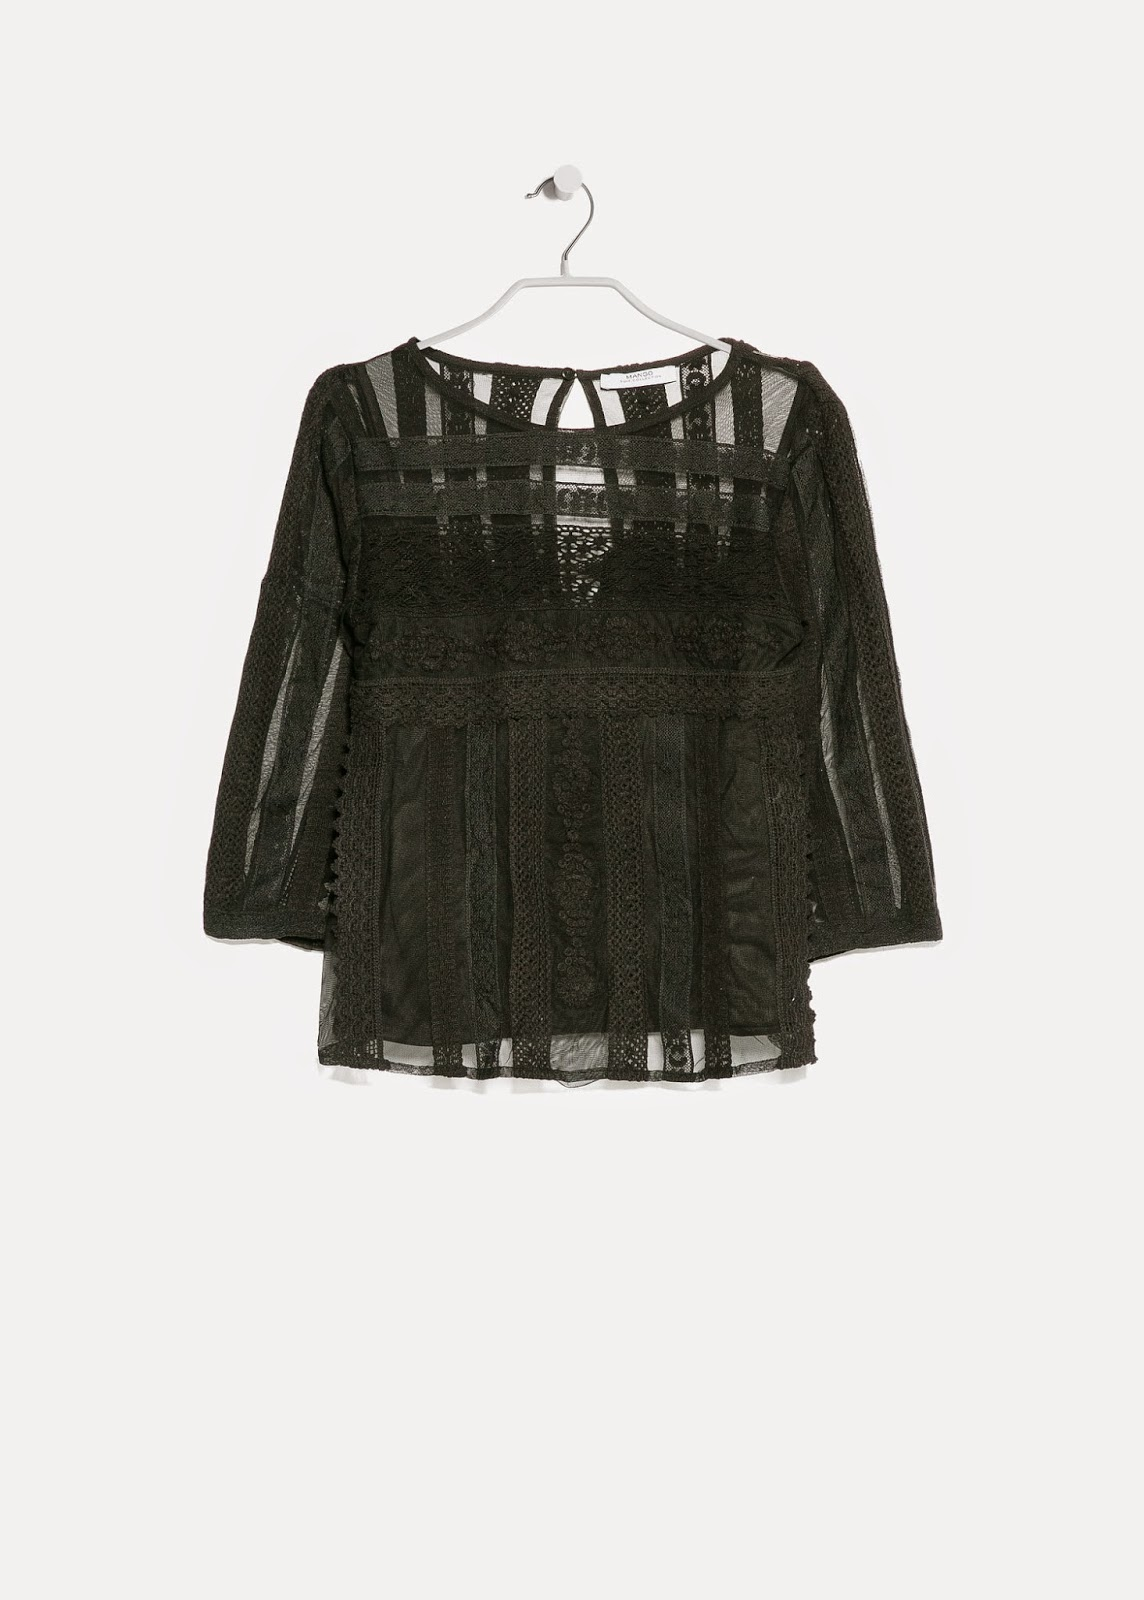 mango black embroidered blouse, mango black gypsy top, mango lace black top,